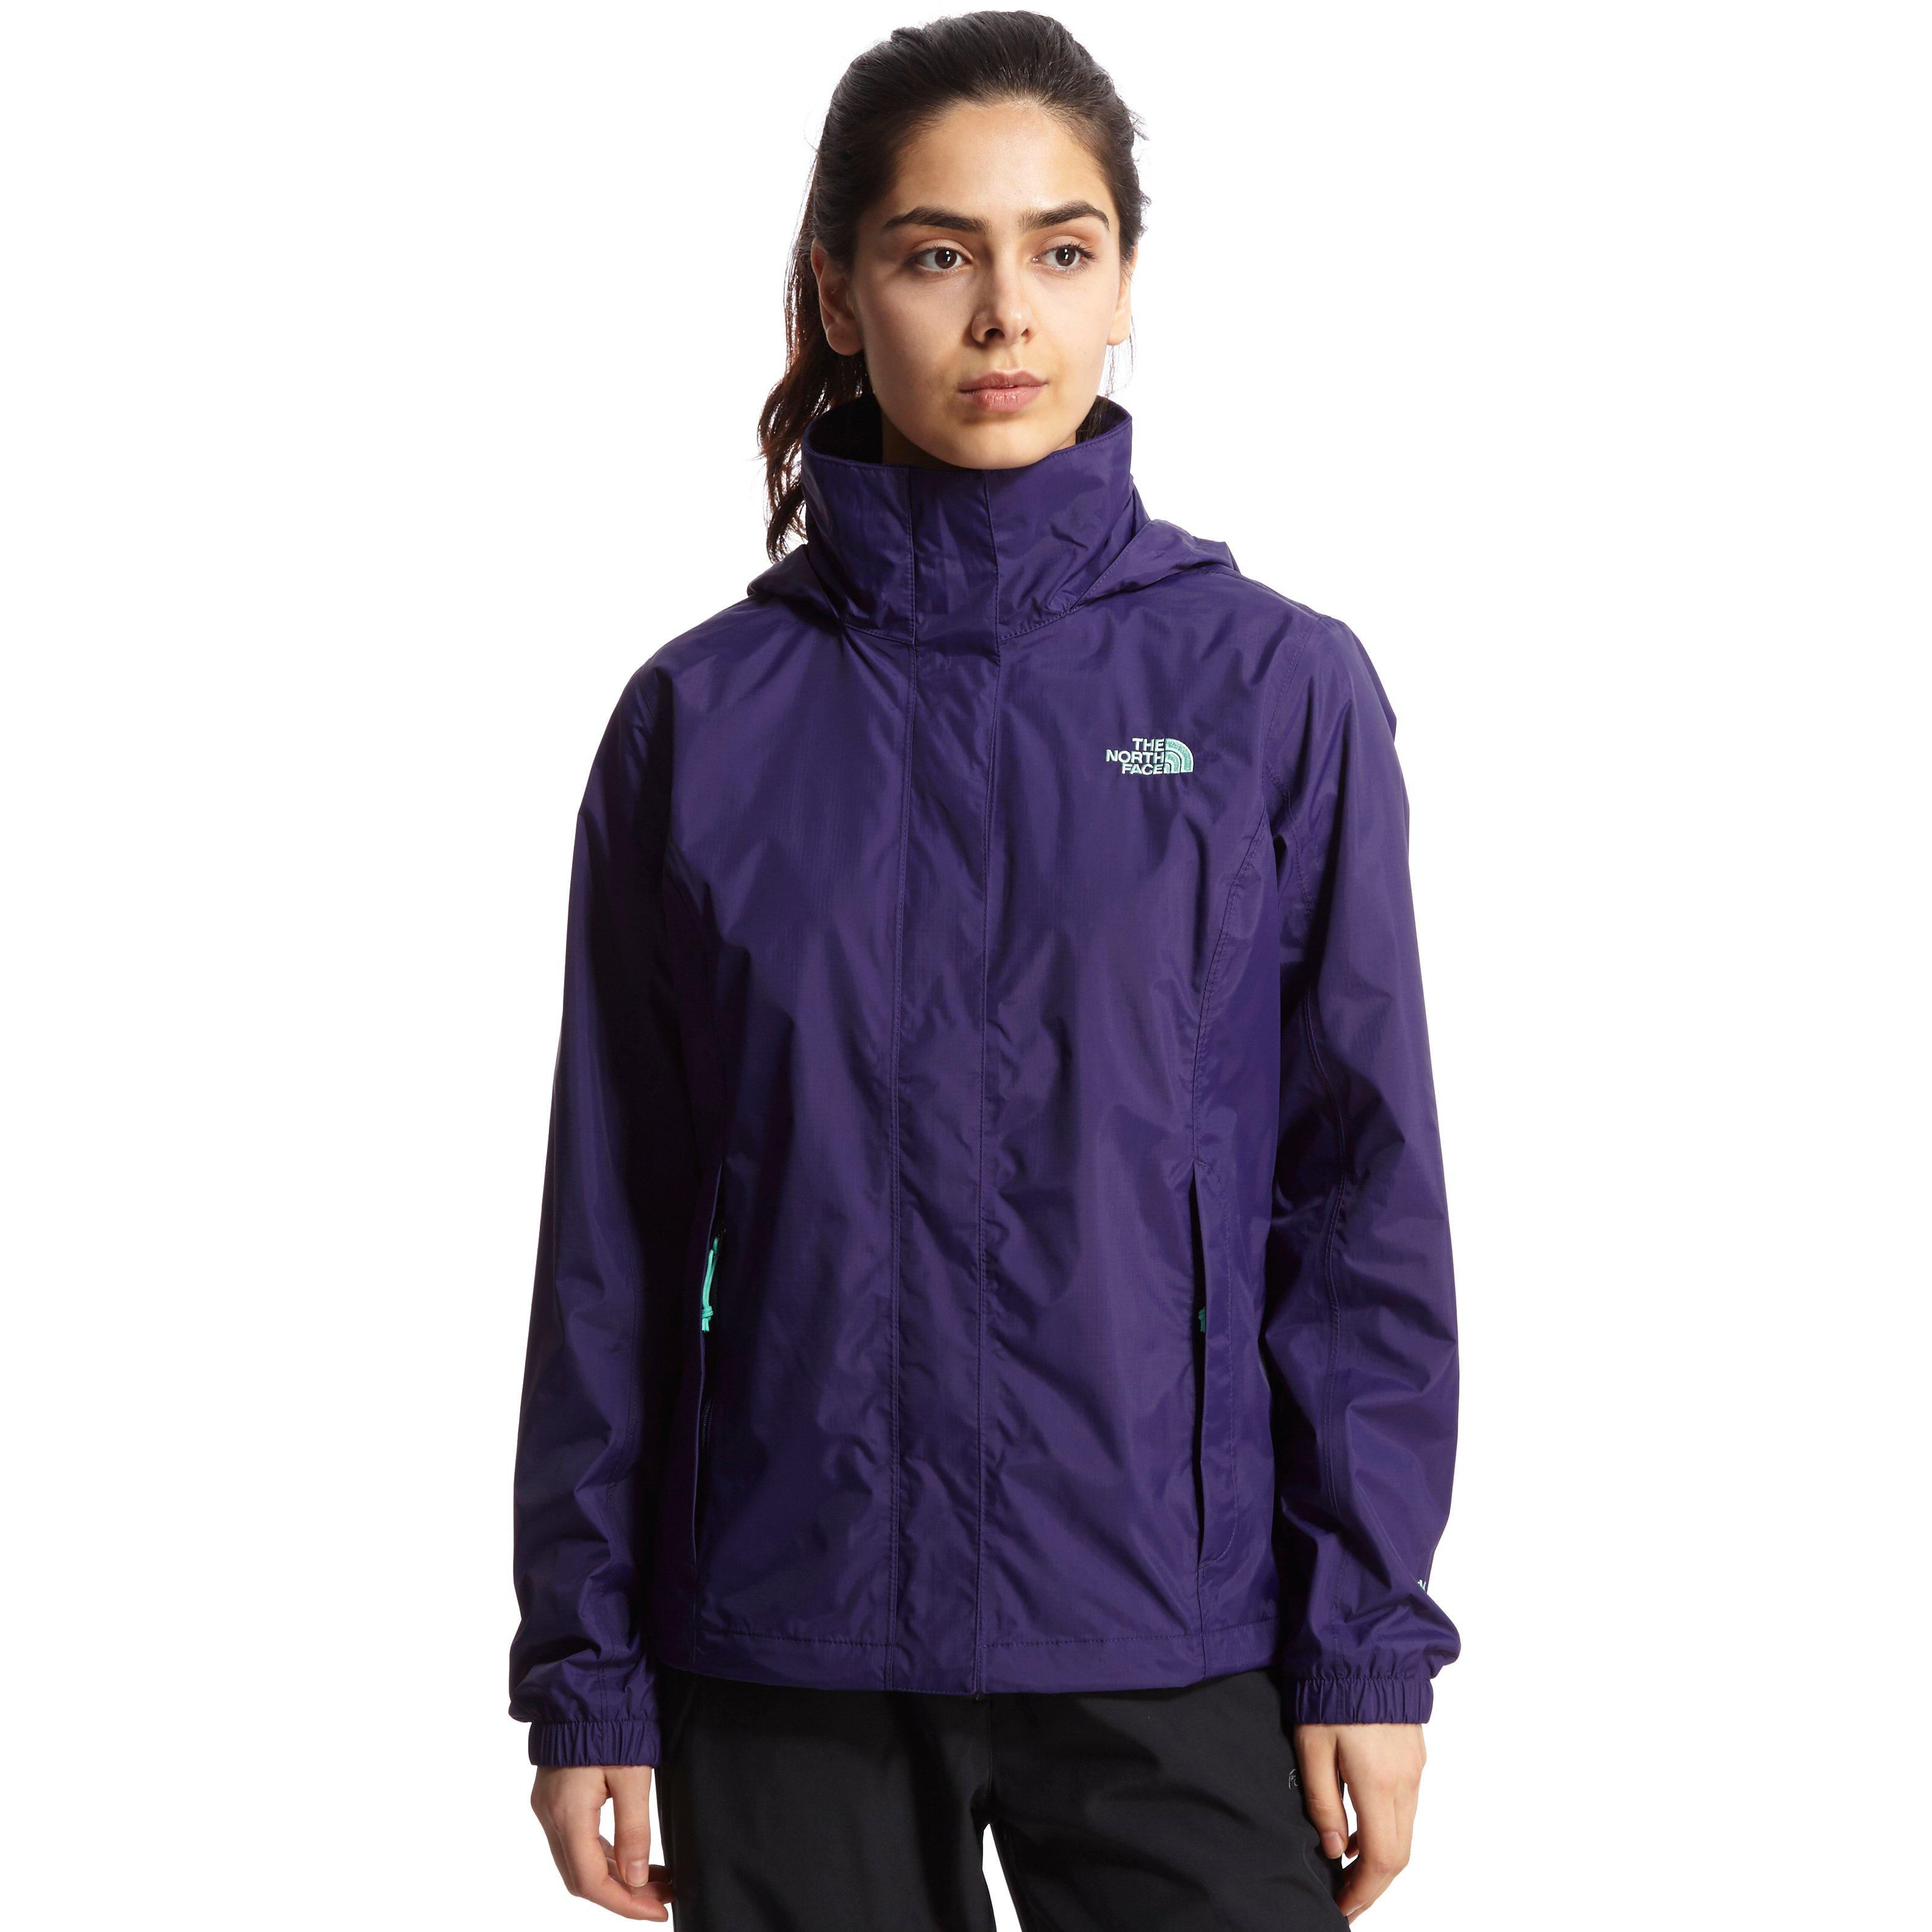 Womens purple north face jacket